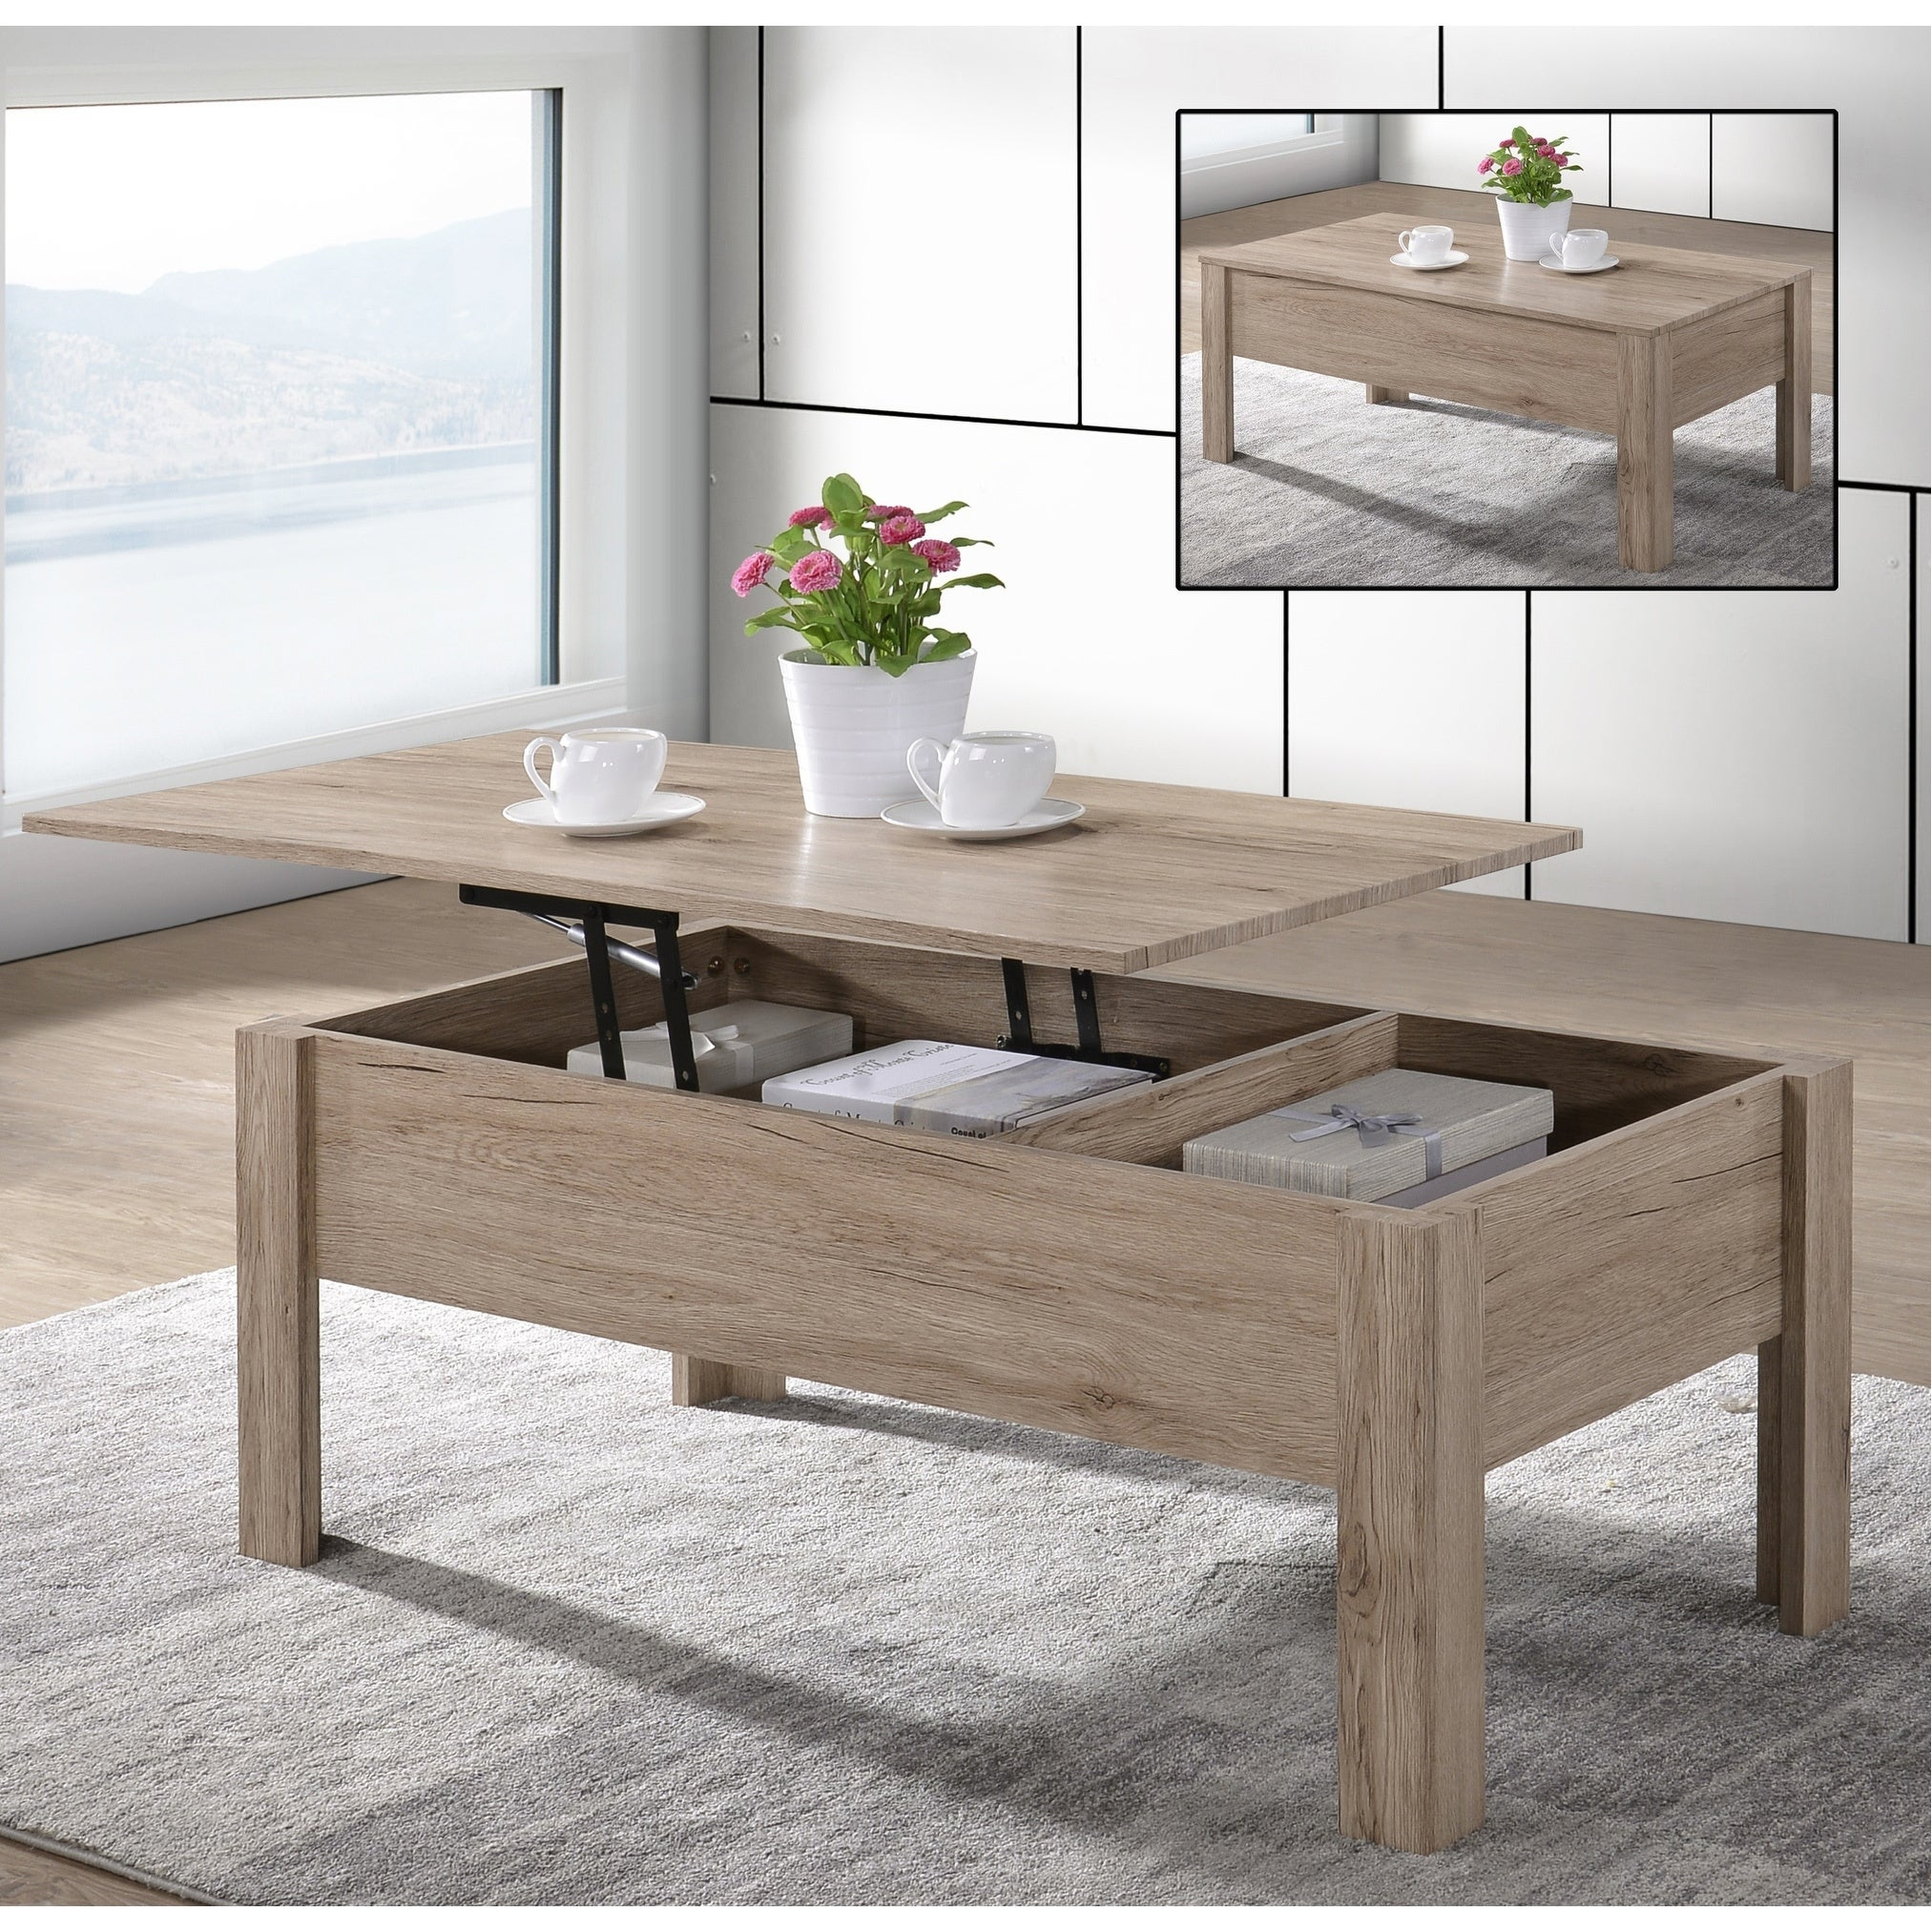 Emily light oak finish lift top coffee table with storage 21 65 x 43 31 x 17 72